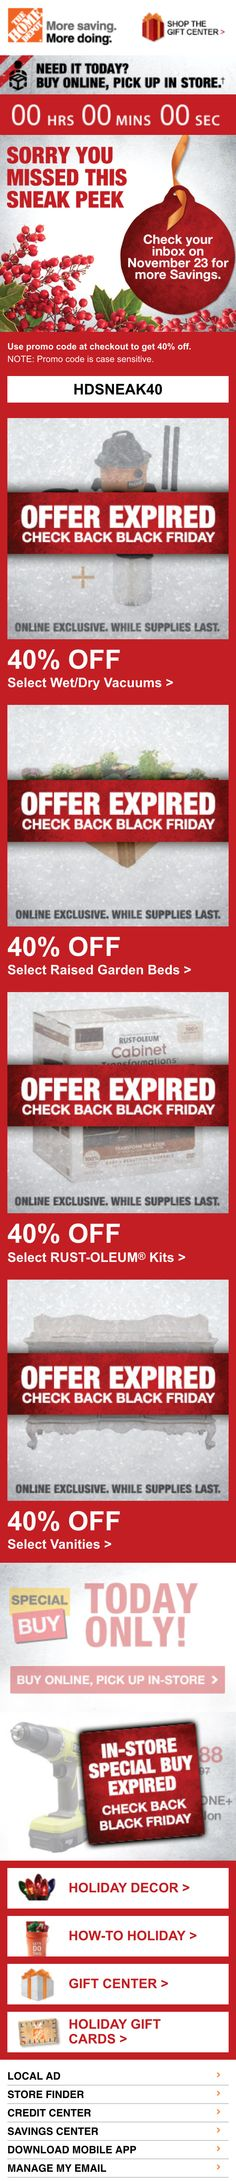 Home Depot >> sent 11/21/14 >>  40% OFF  TODAY ONLY  Black Friday Sneak Peek >> While this sneak peek email's offer is active, Home Depot creates urgency by using a countdown clock. Once the offer expires, they create urgency for future messaging by updating the images in the email to reflect that the offer has expired, directing subscribers to look out for a new email on Nov. 23 and to shop with them on Black Friday. —Chad White, Lead Research Analyst, Salesforce Marketing Cloud